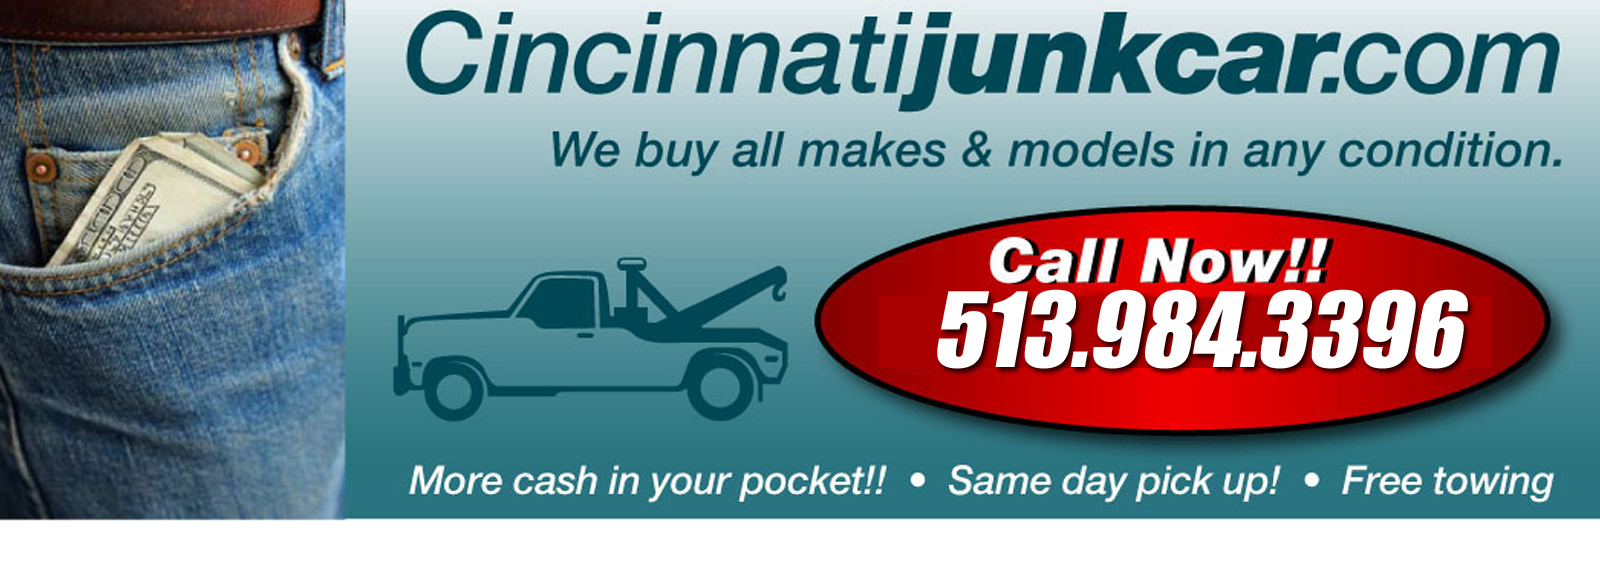 Cincinnati Junk Car | Cash For Cars Cincinnati OH | We Buy Junk ...